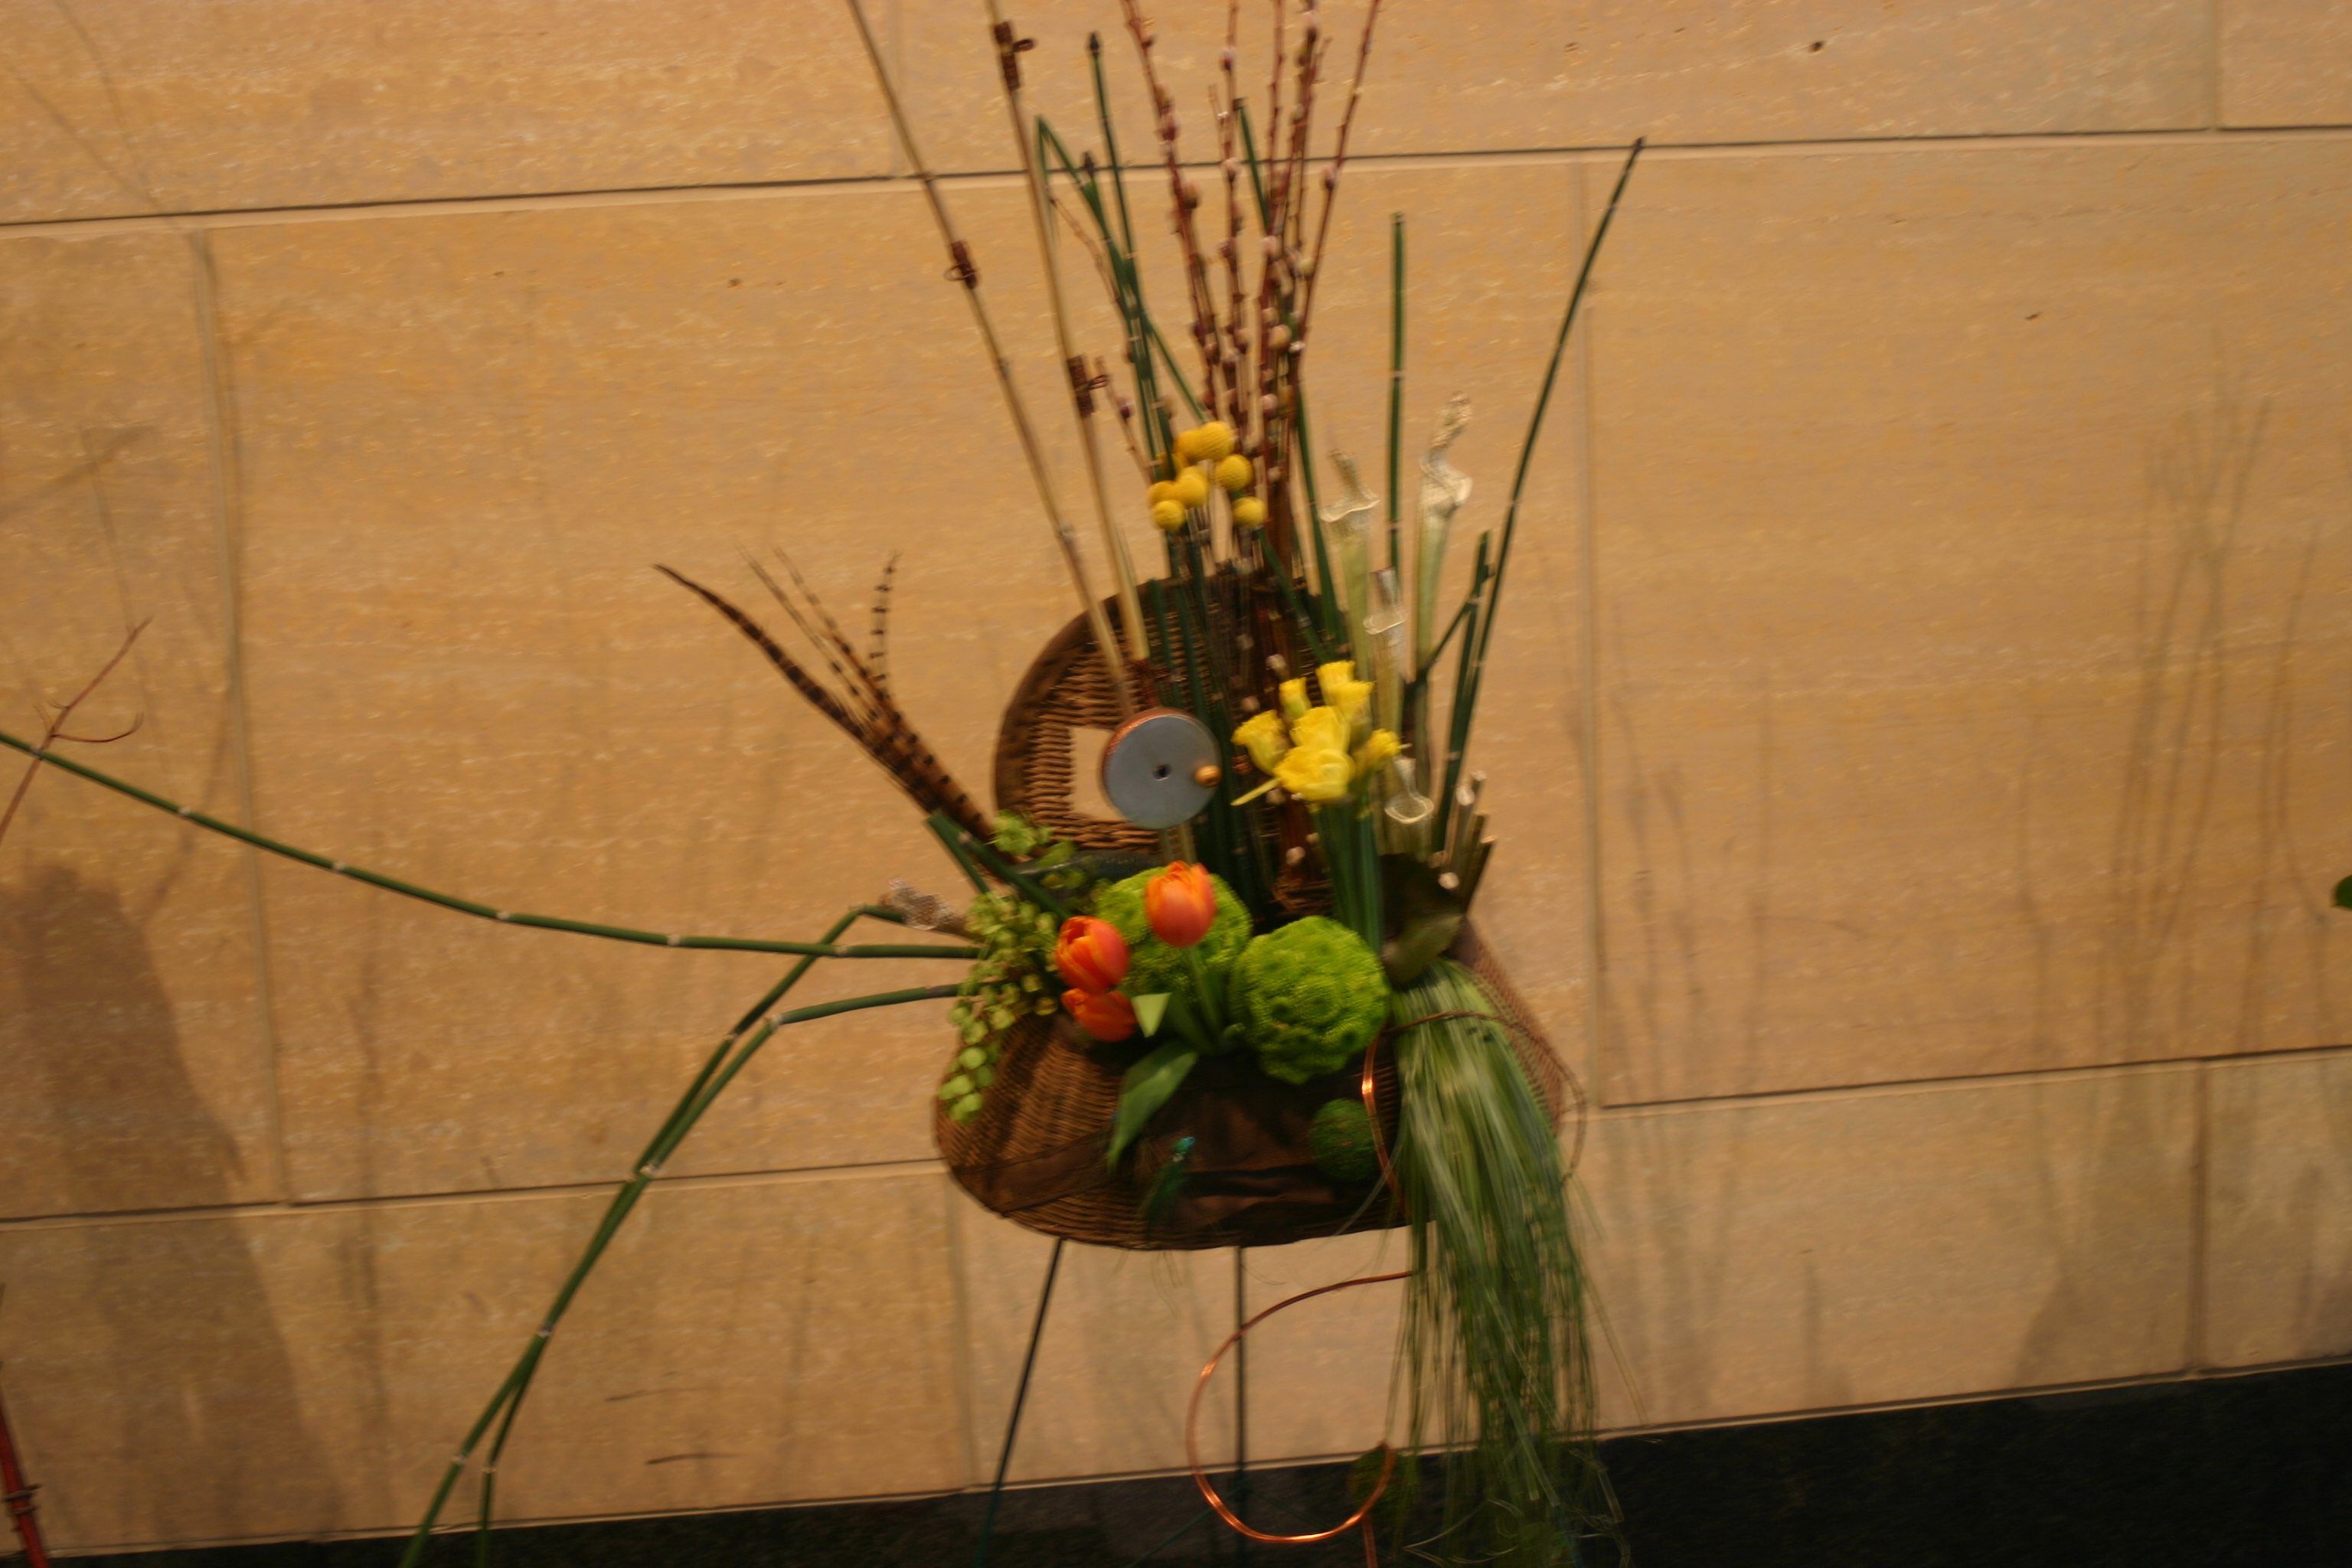 Photos from the great lakes floral expo fisherman floral design theme izmirmasajfo Choice Image